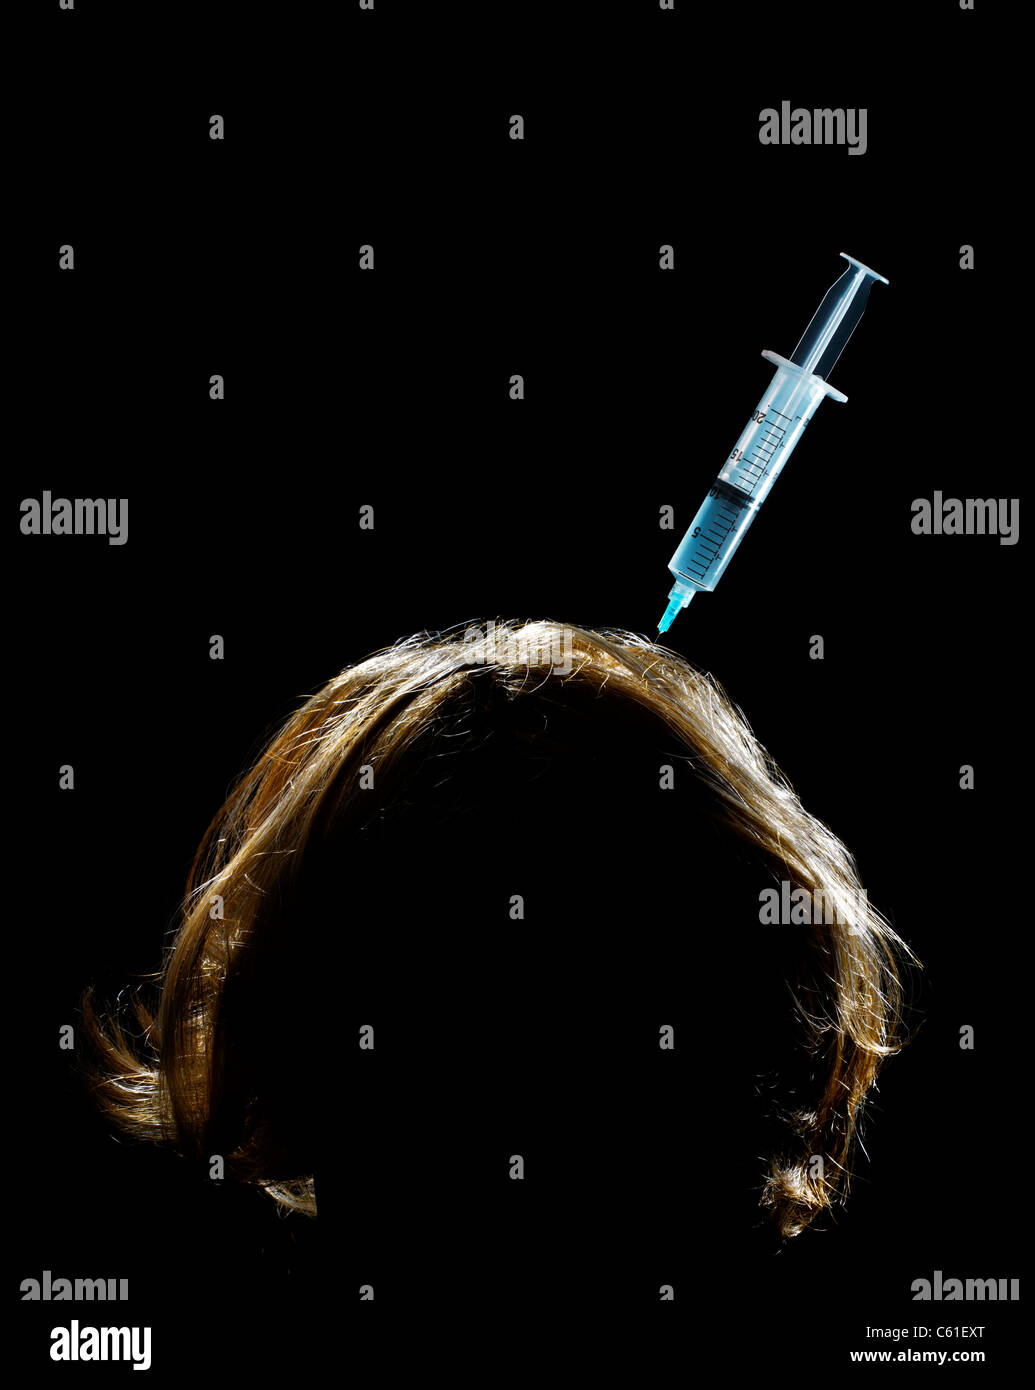 Human Head with Hypodermic Syringe - Stock Image